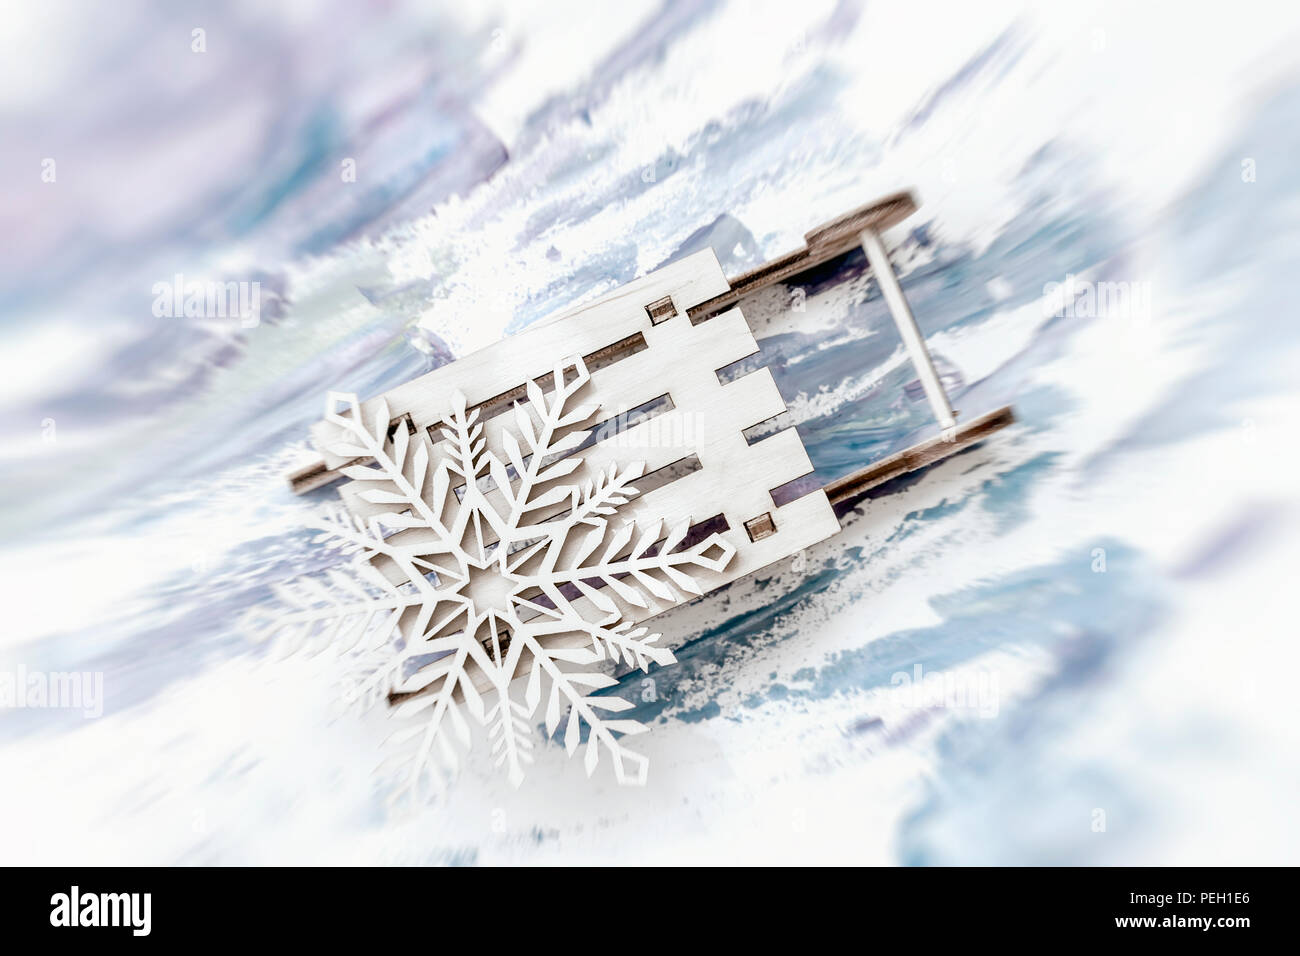 abstract blurred festive christmas background wooden decoration snowflake on little wooden sled - Wooden Sled Decoration Christmas